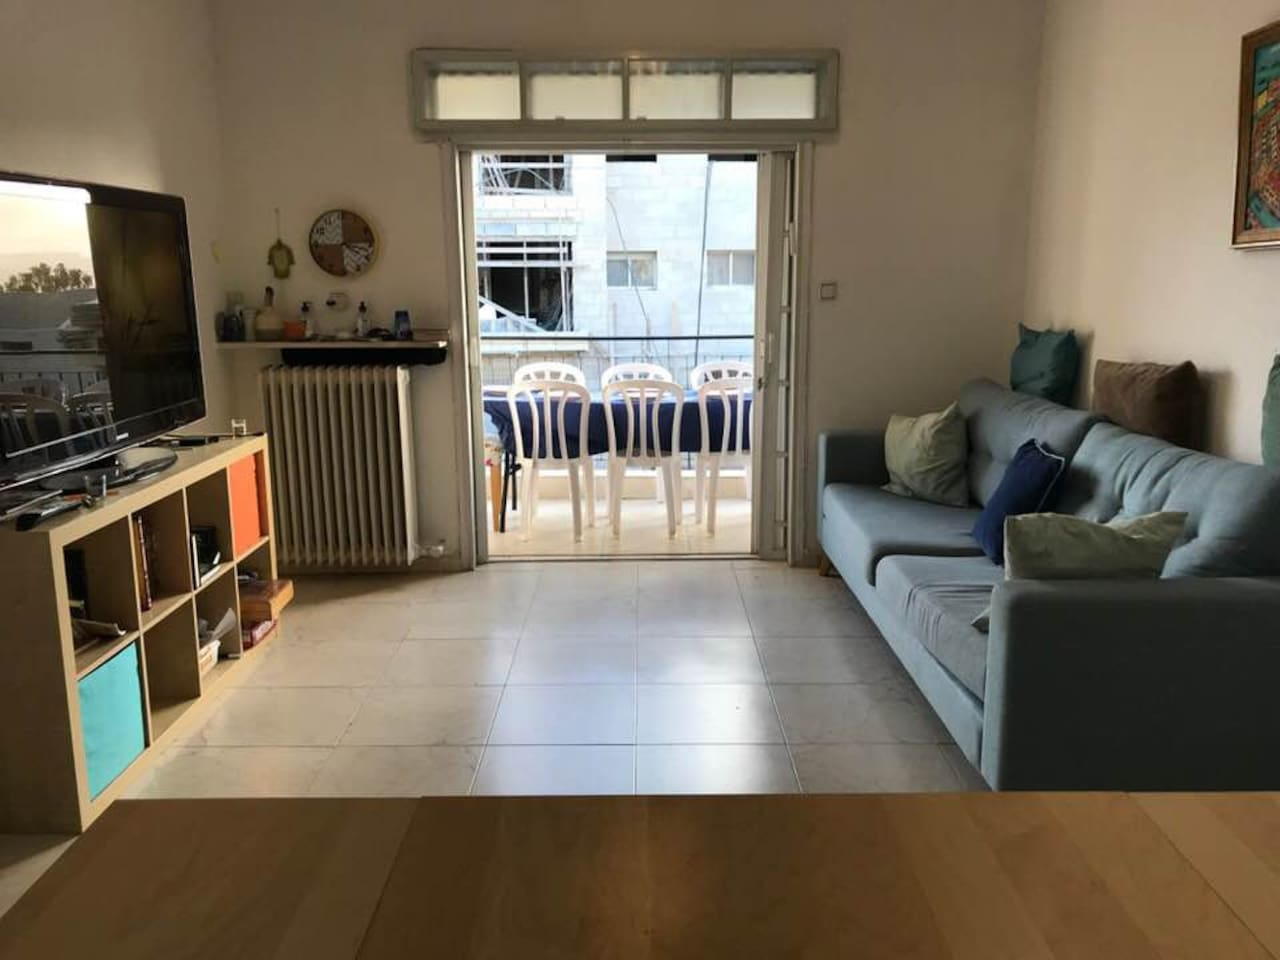 shared living room with tv and comfy couch